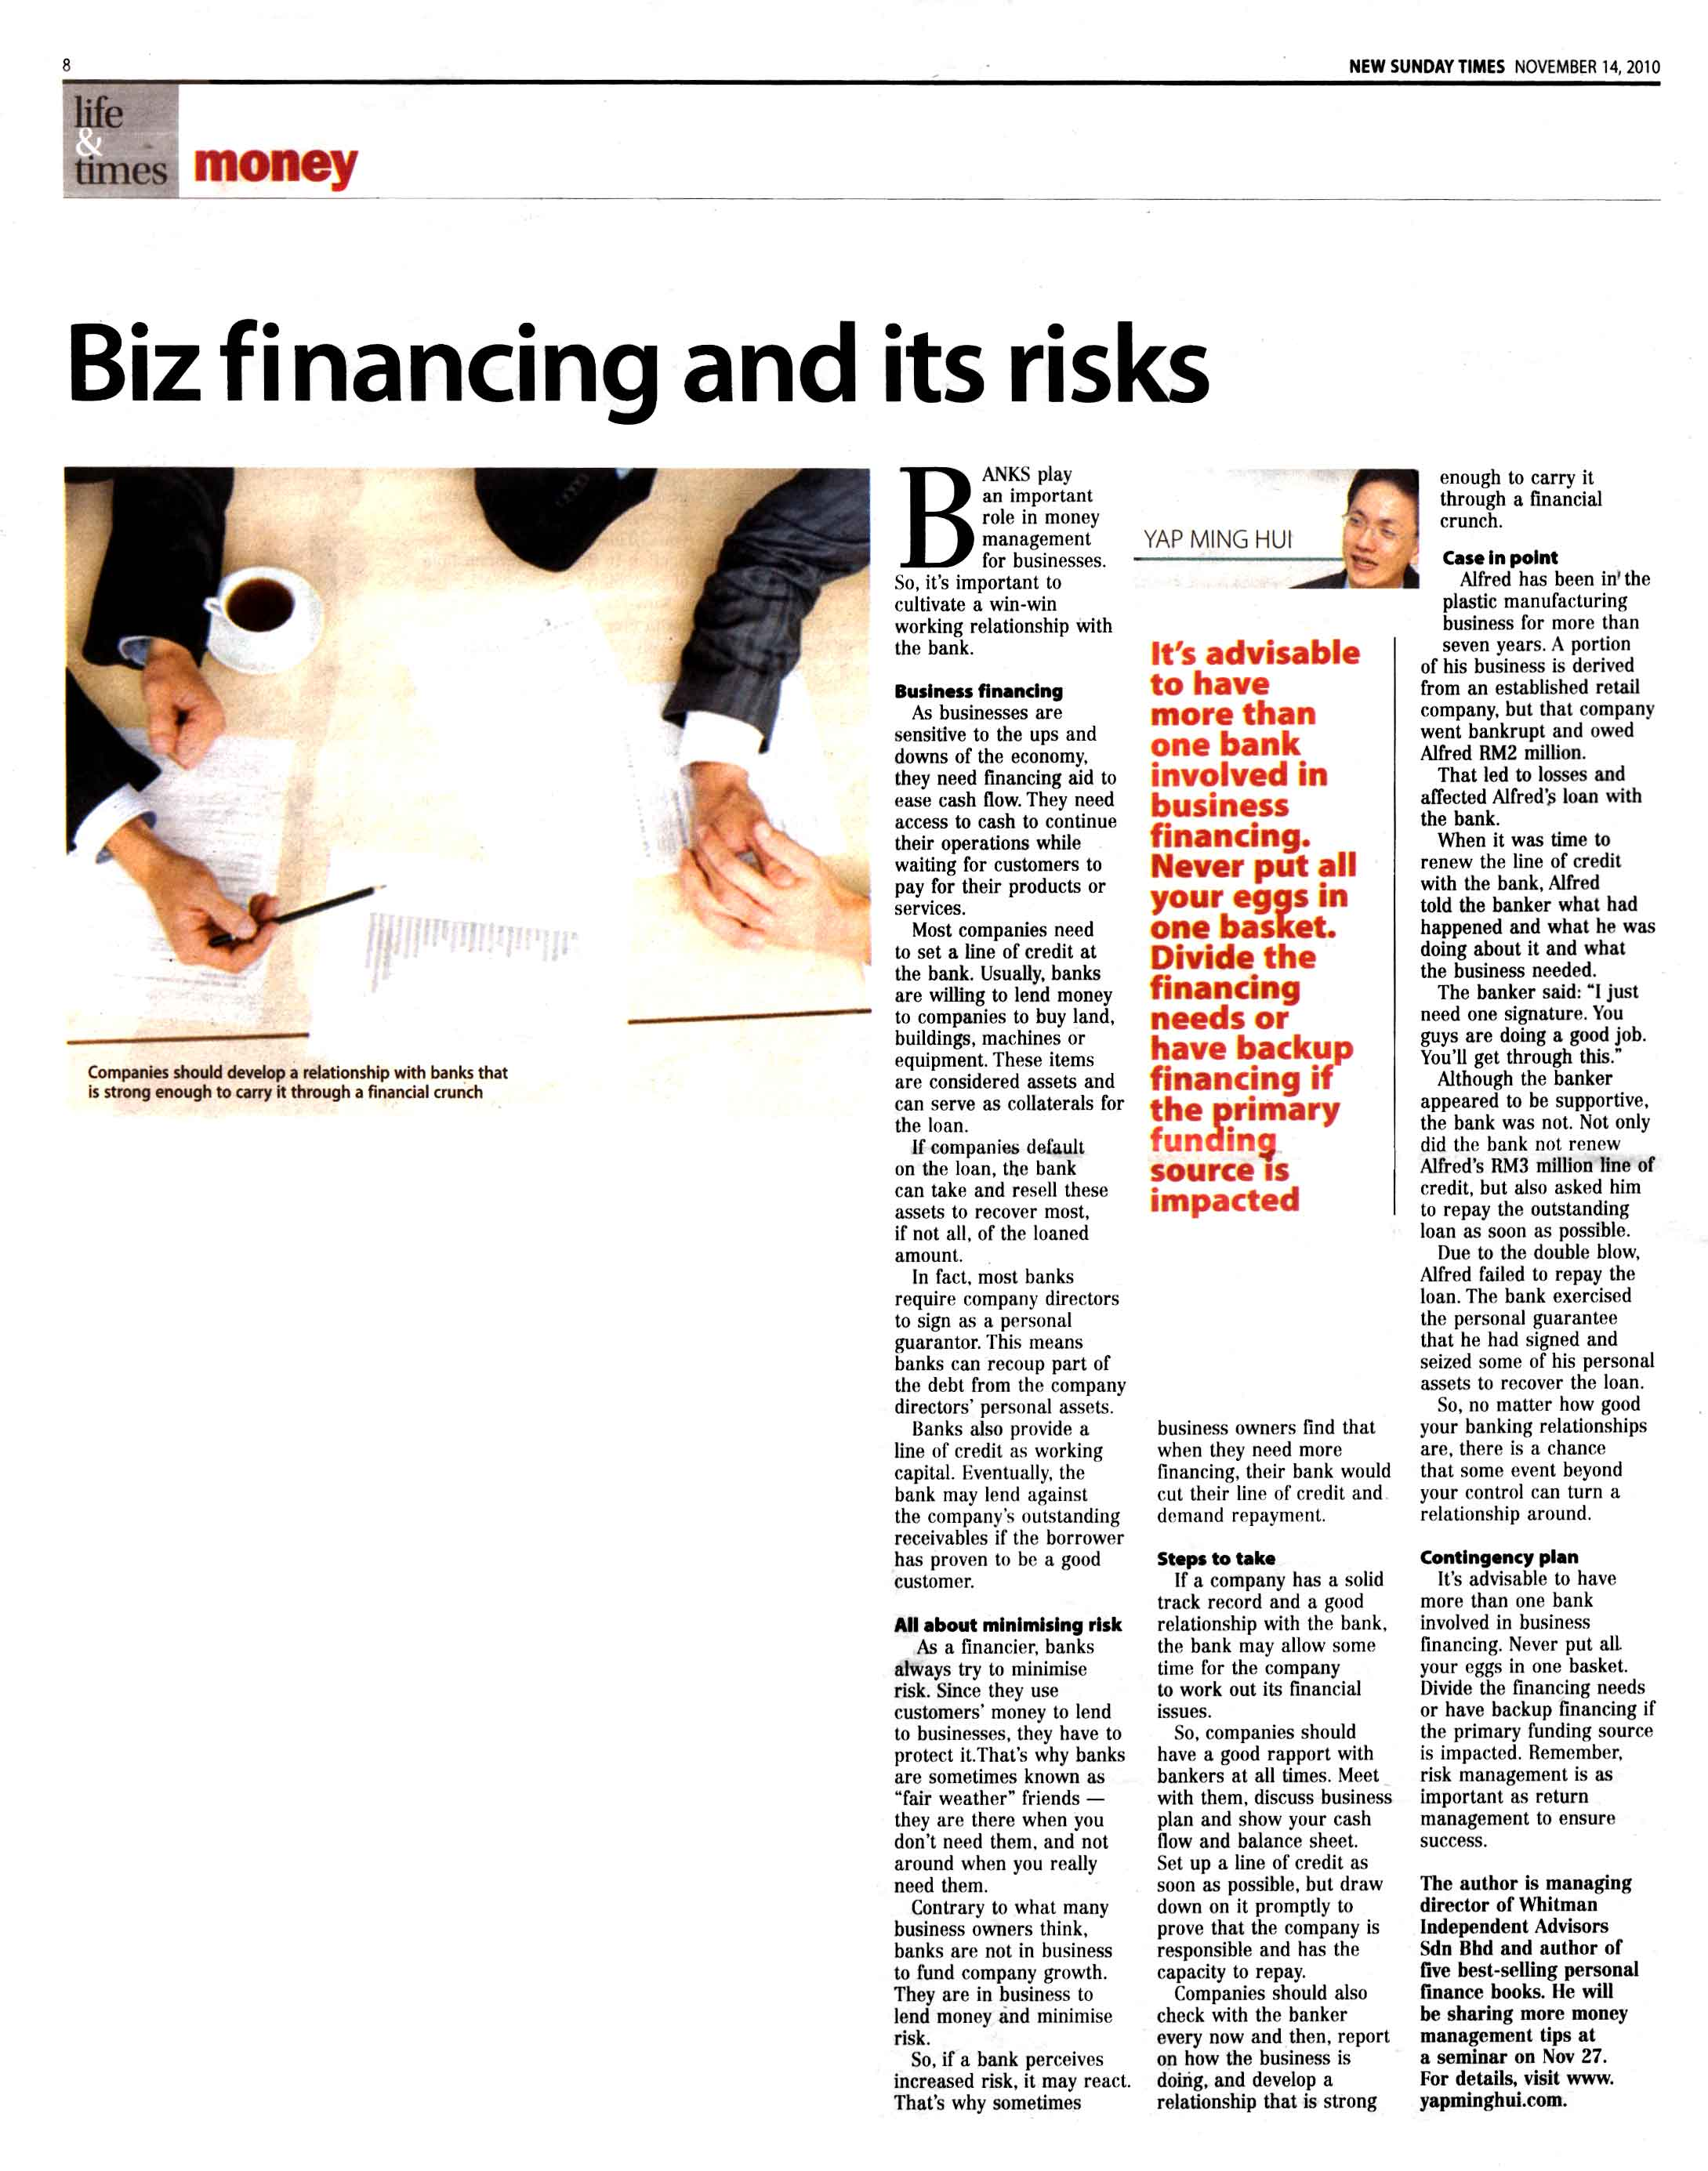 Biz financing and its risks (New Sunday Times) - 14 Nov 2010